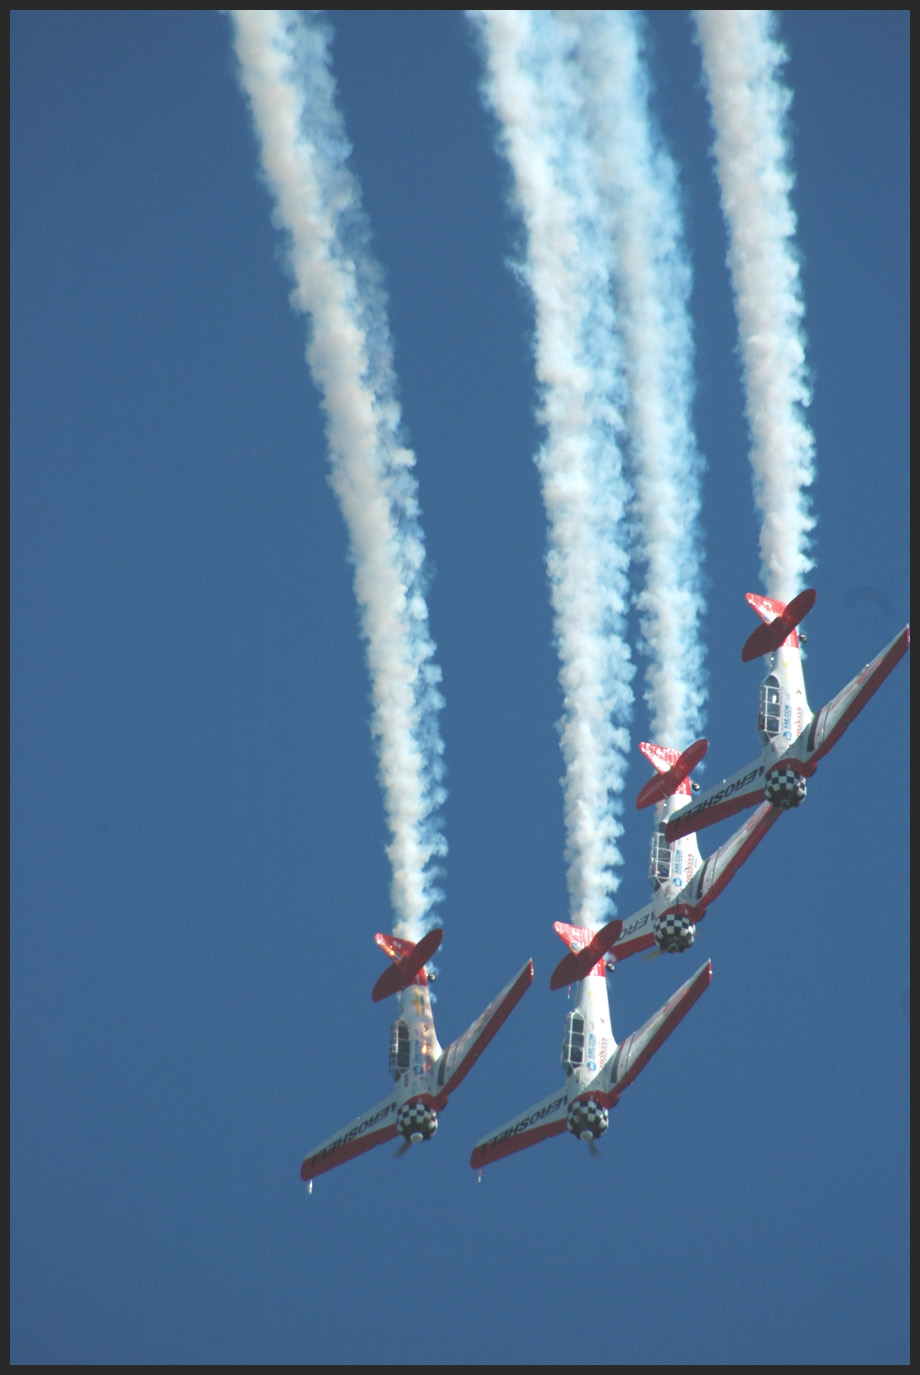 Aerobatic display straight down